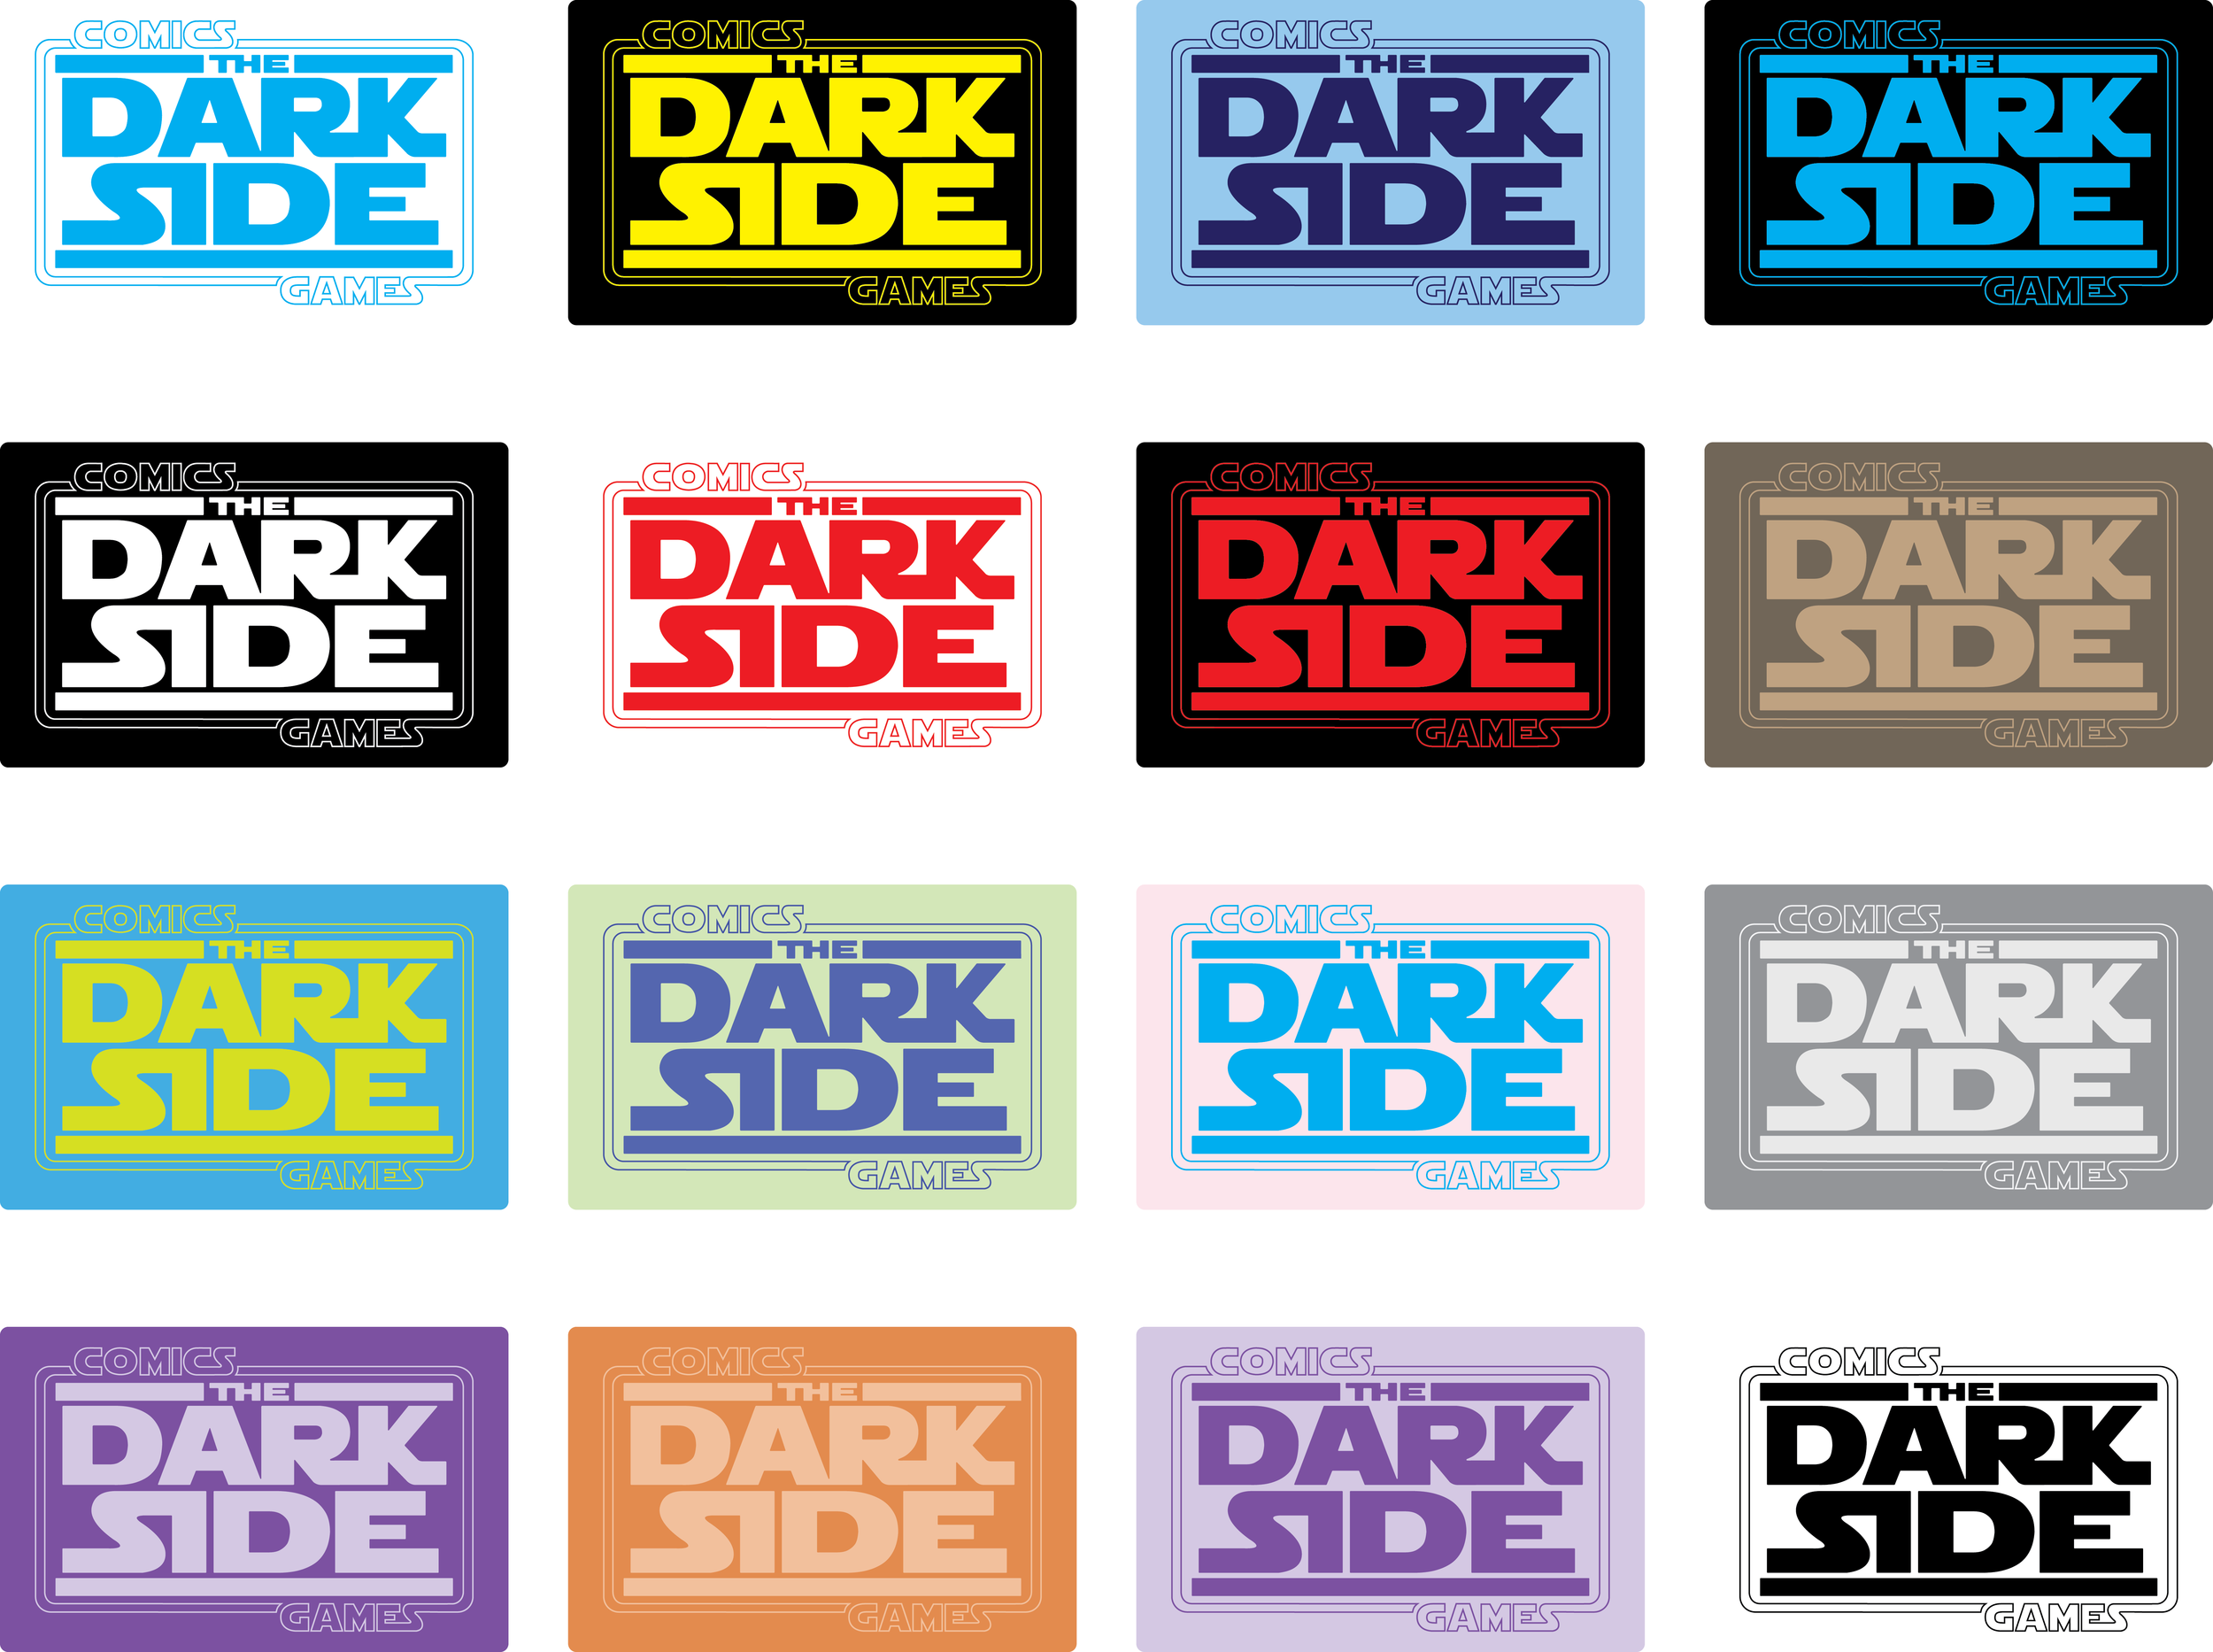 DarkSideLogo_variants.png